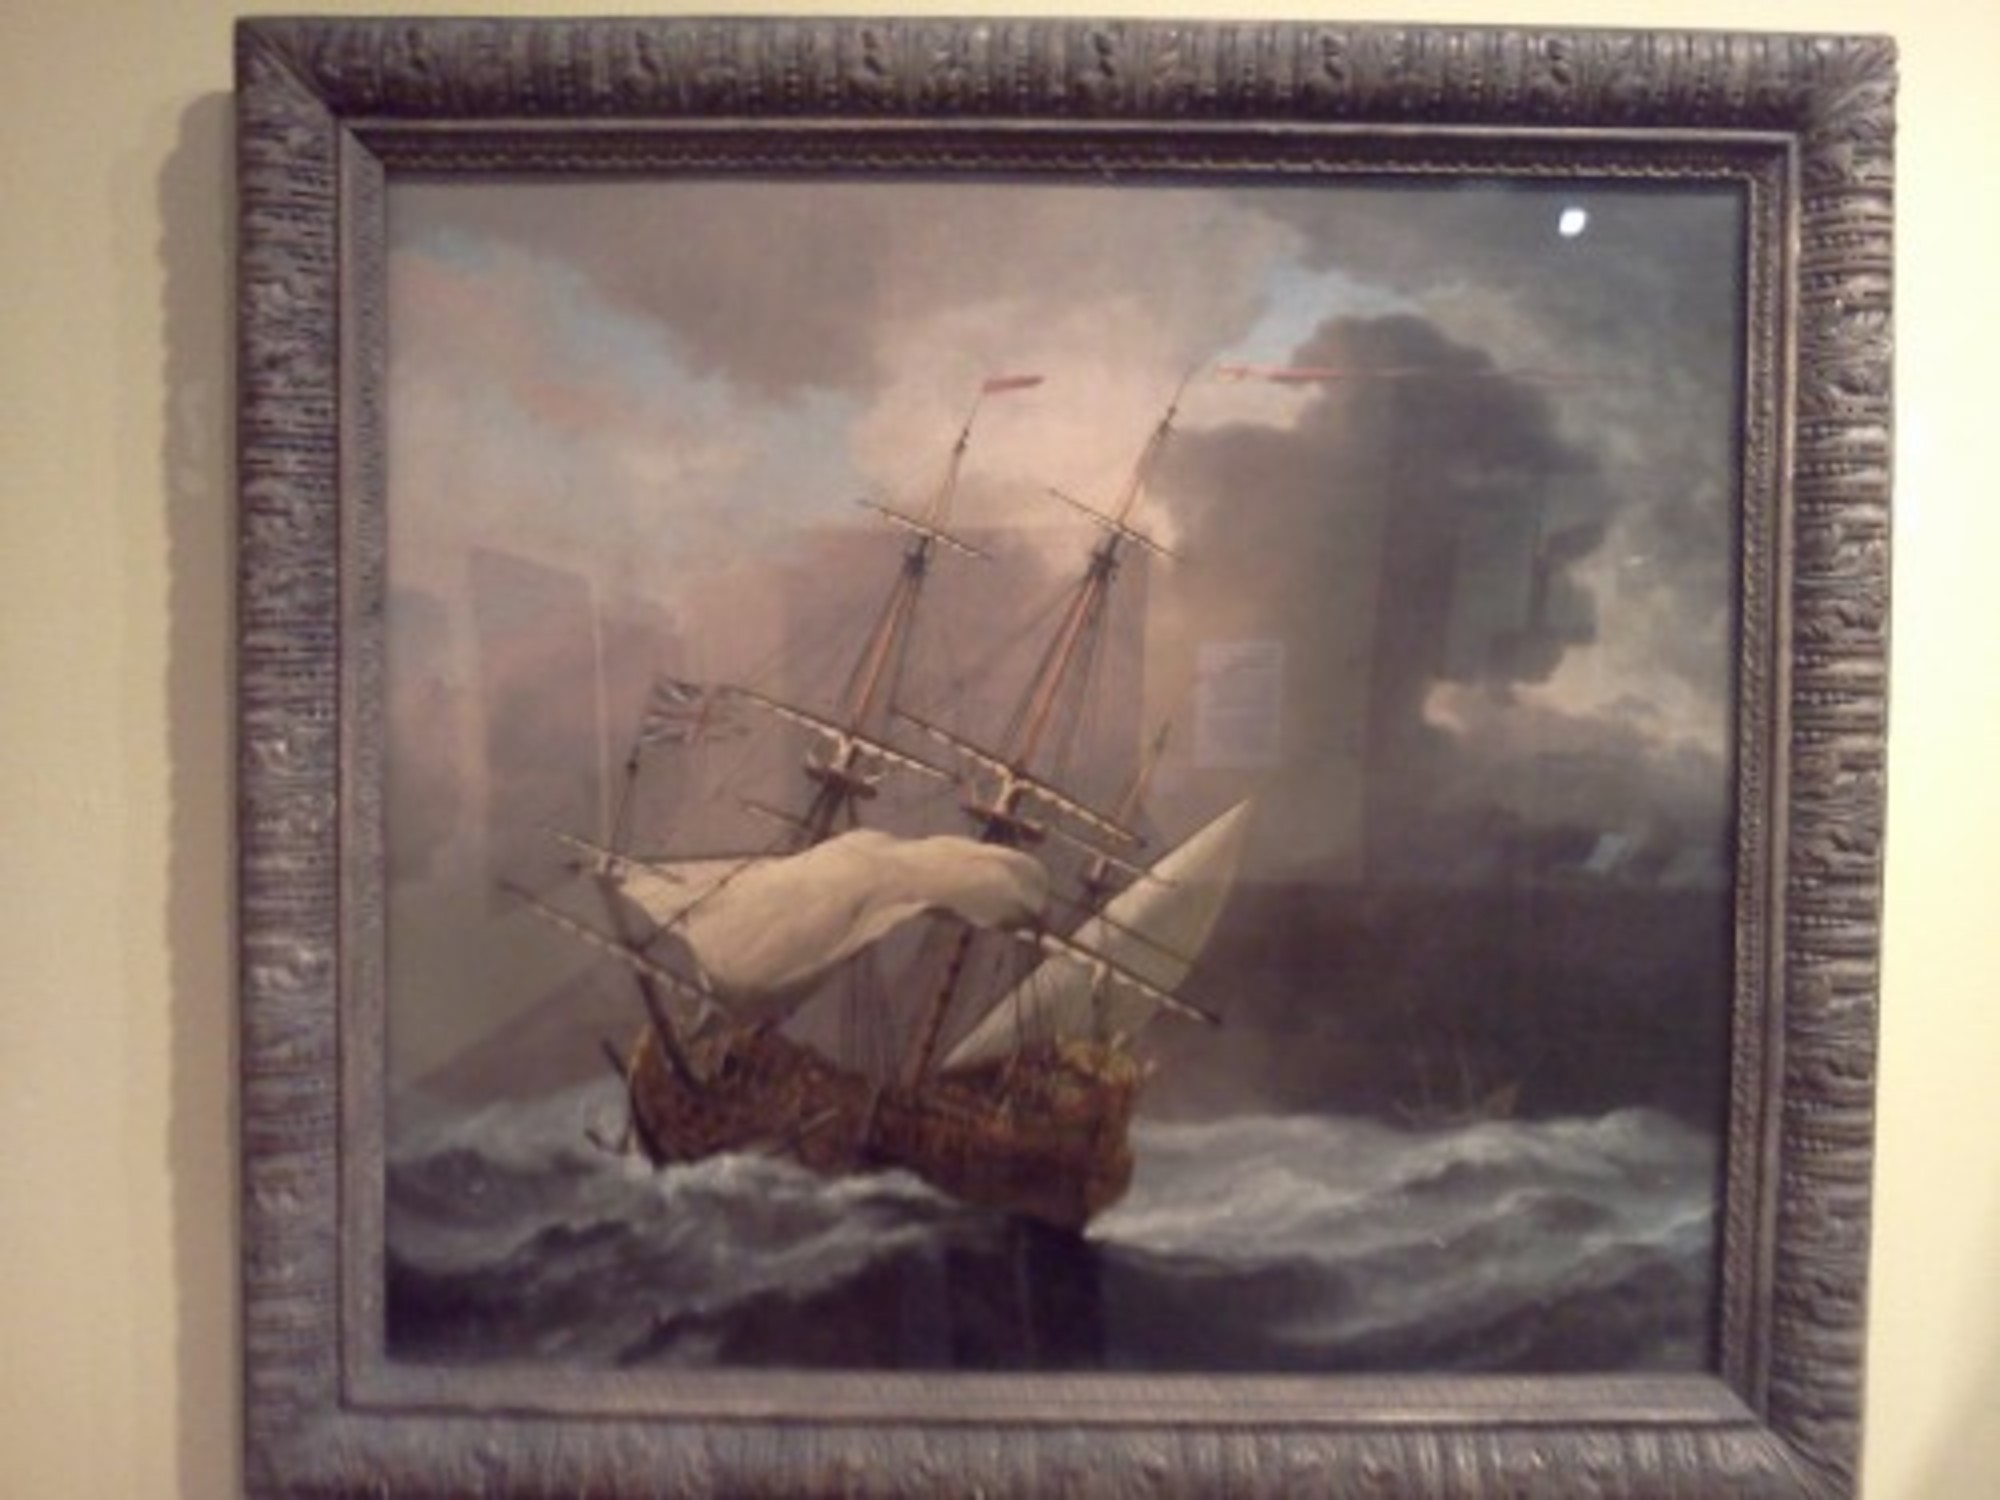 An-English-Man-o-War-in-a-Gale---Willem-van-de-Velde-the-younger---Birmingham-Museum-and-Art-Gallery-March-2012.jpg